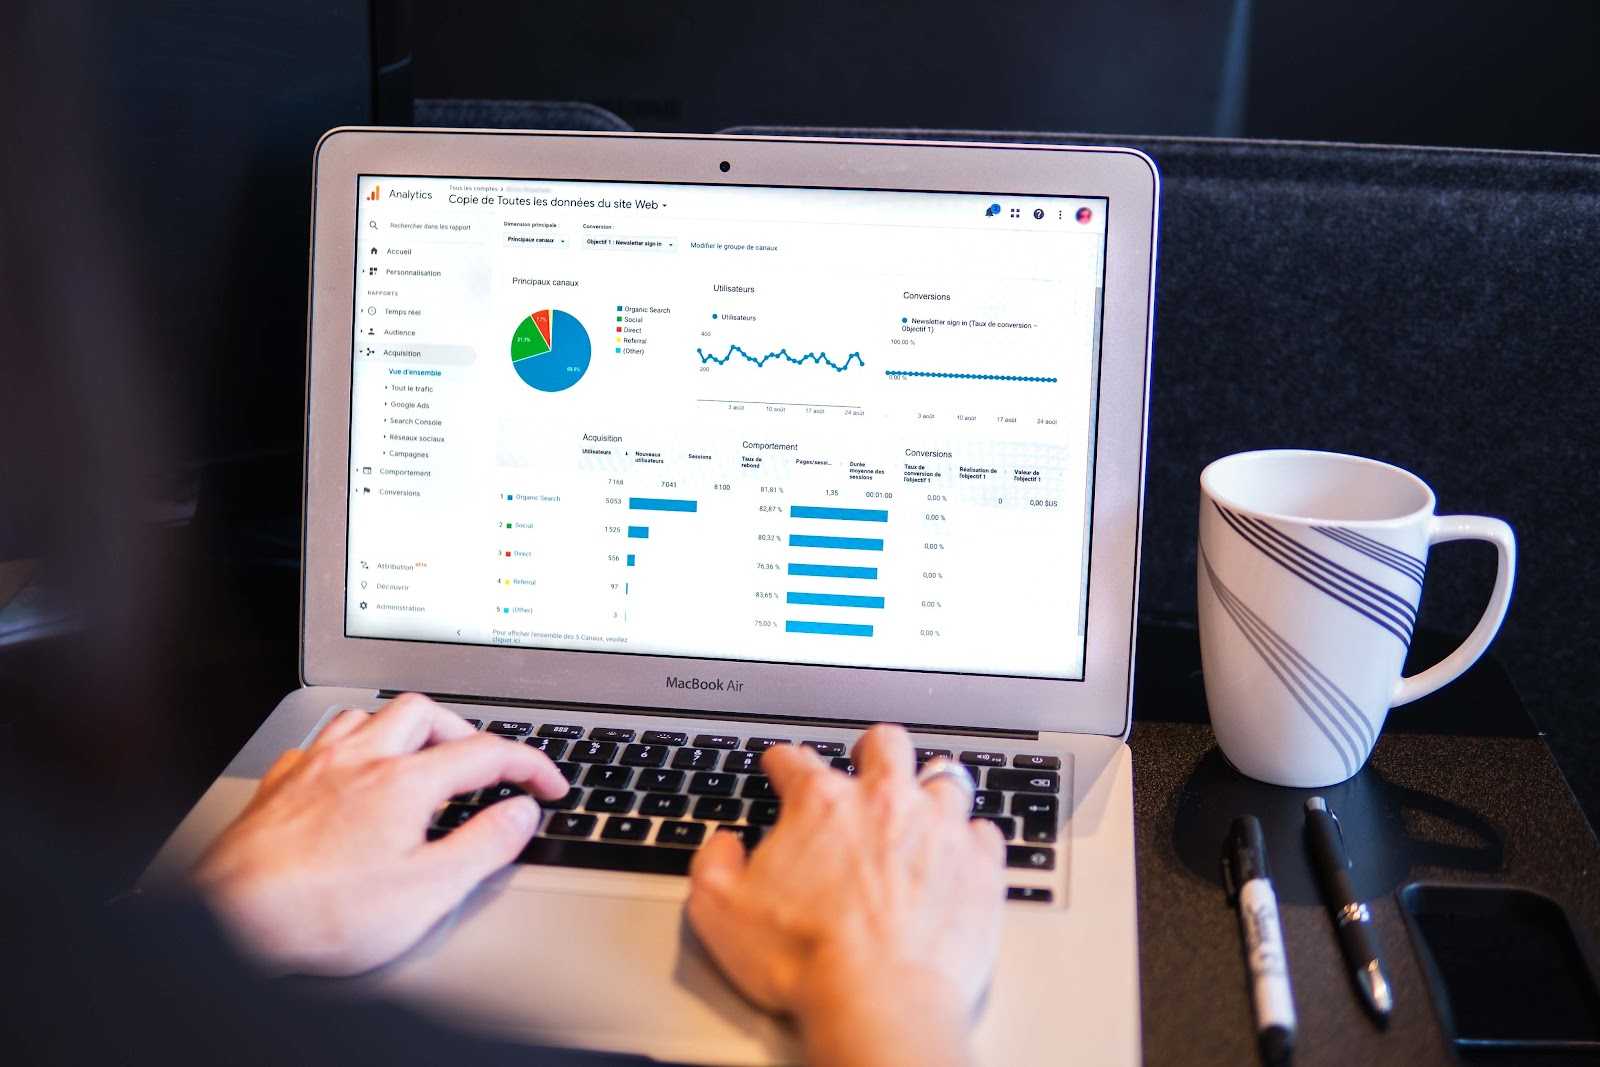 Tracking analytics on a laptop